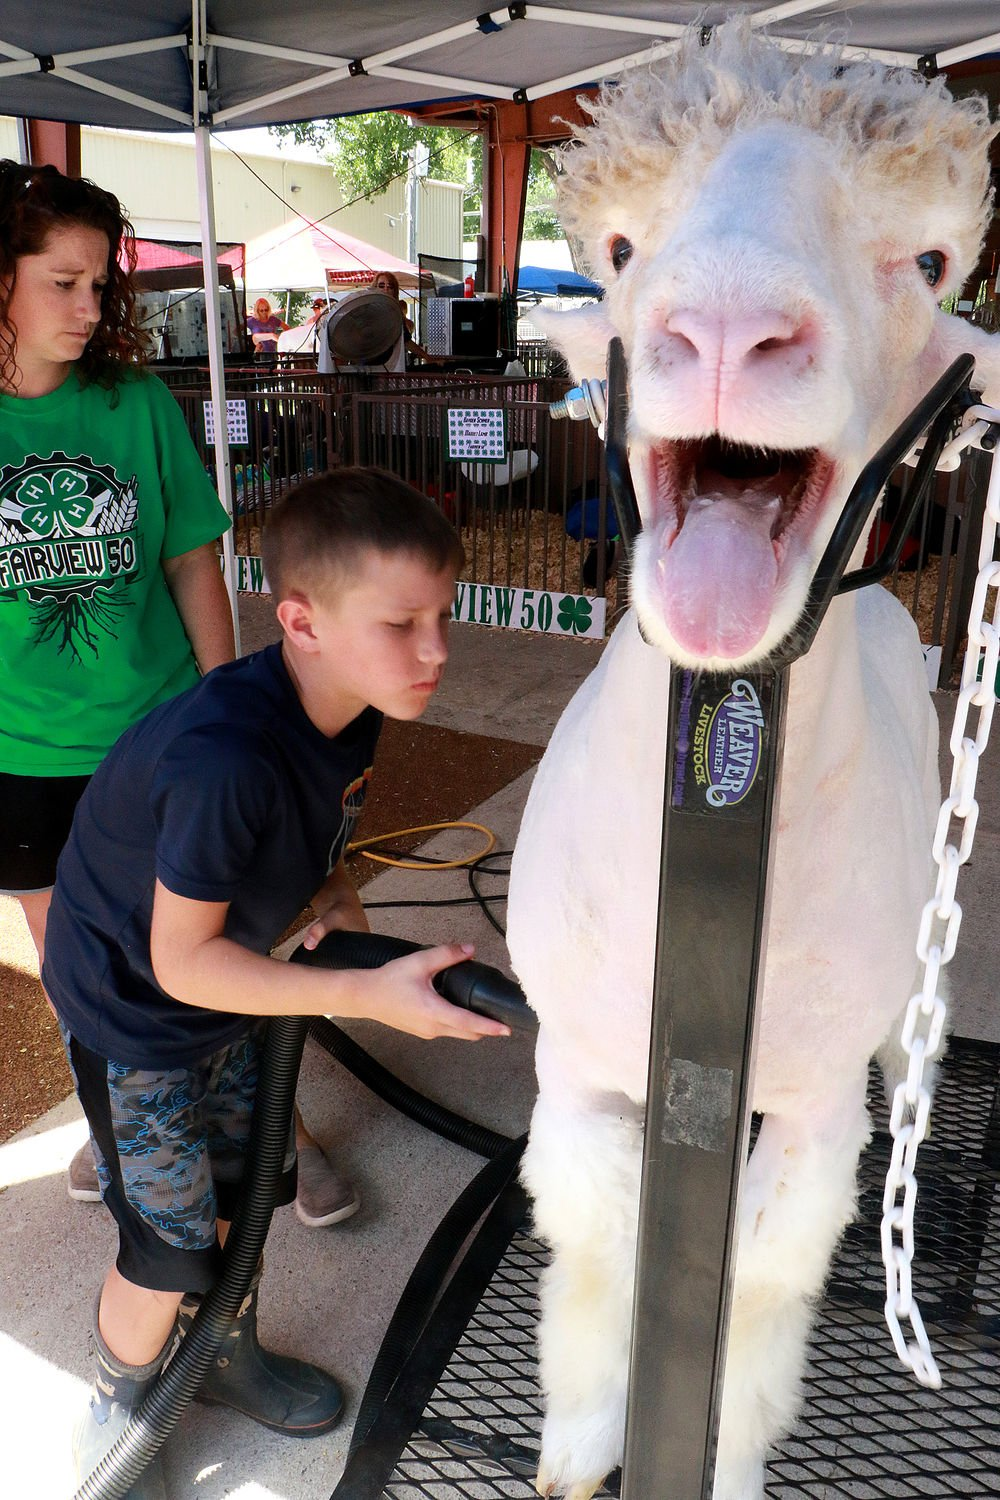 Schmers prepare for sheep showmanship